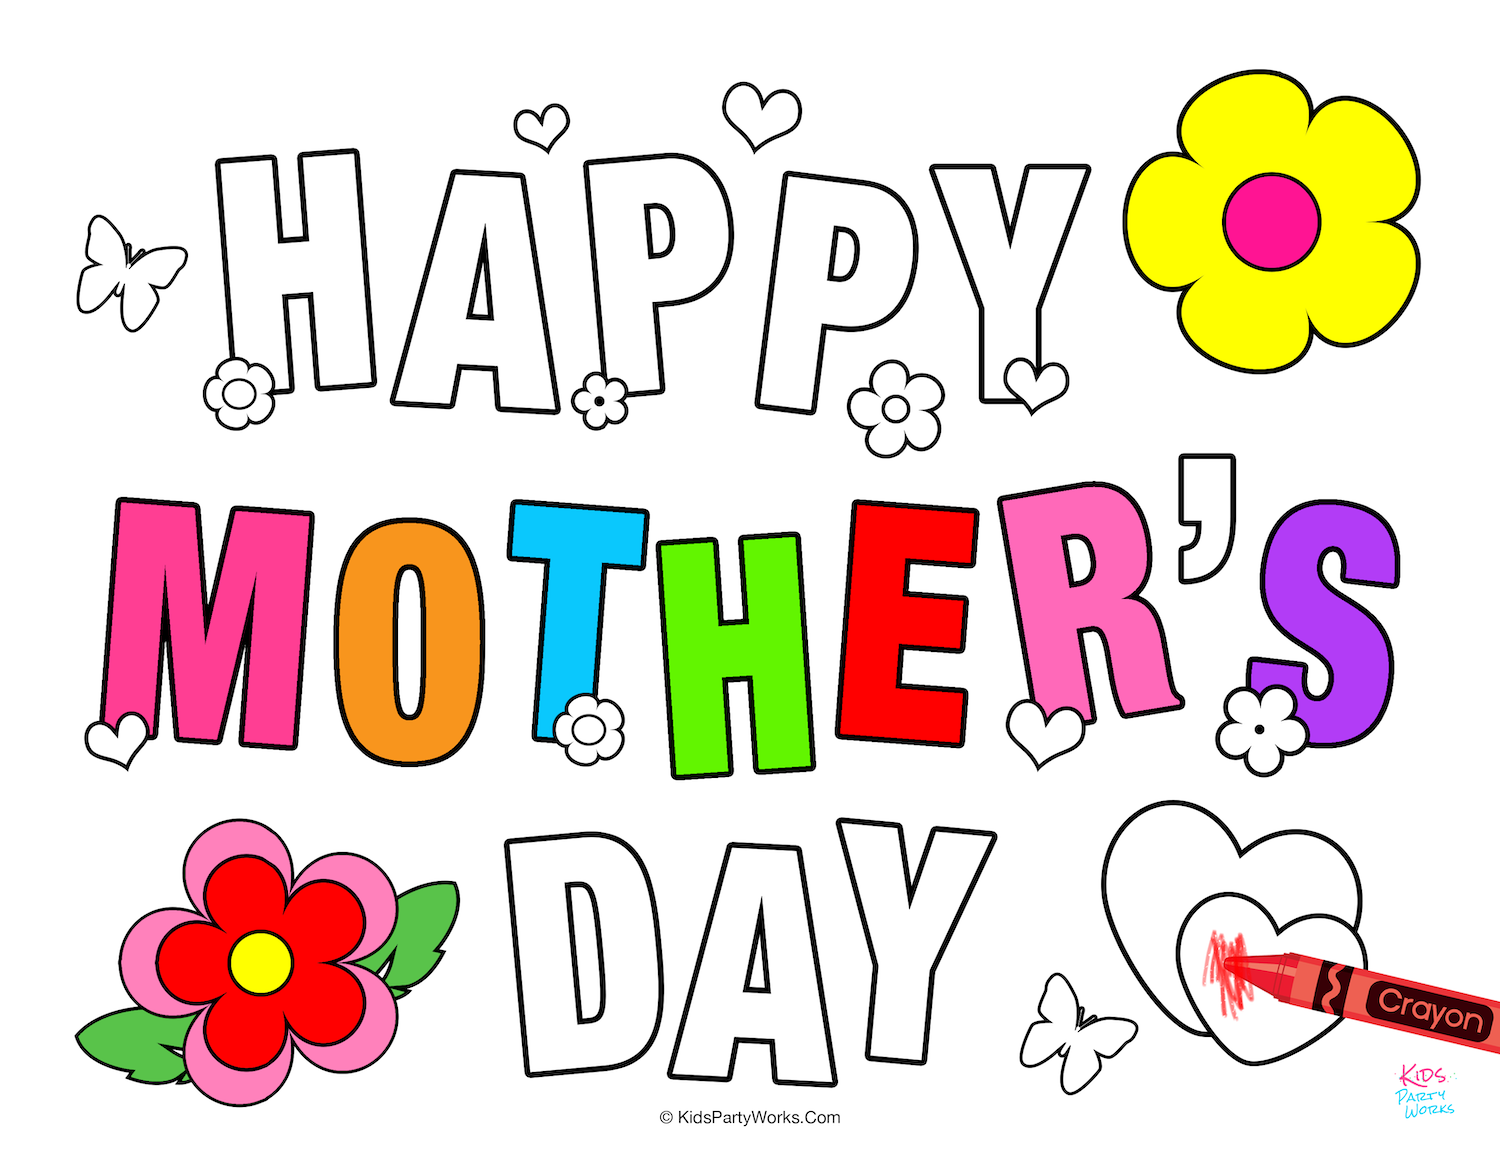 Free Printable Mothers Day Coloring Pages. KidsPartyWorks.Com